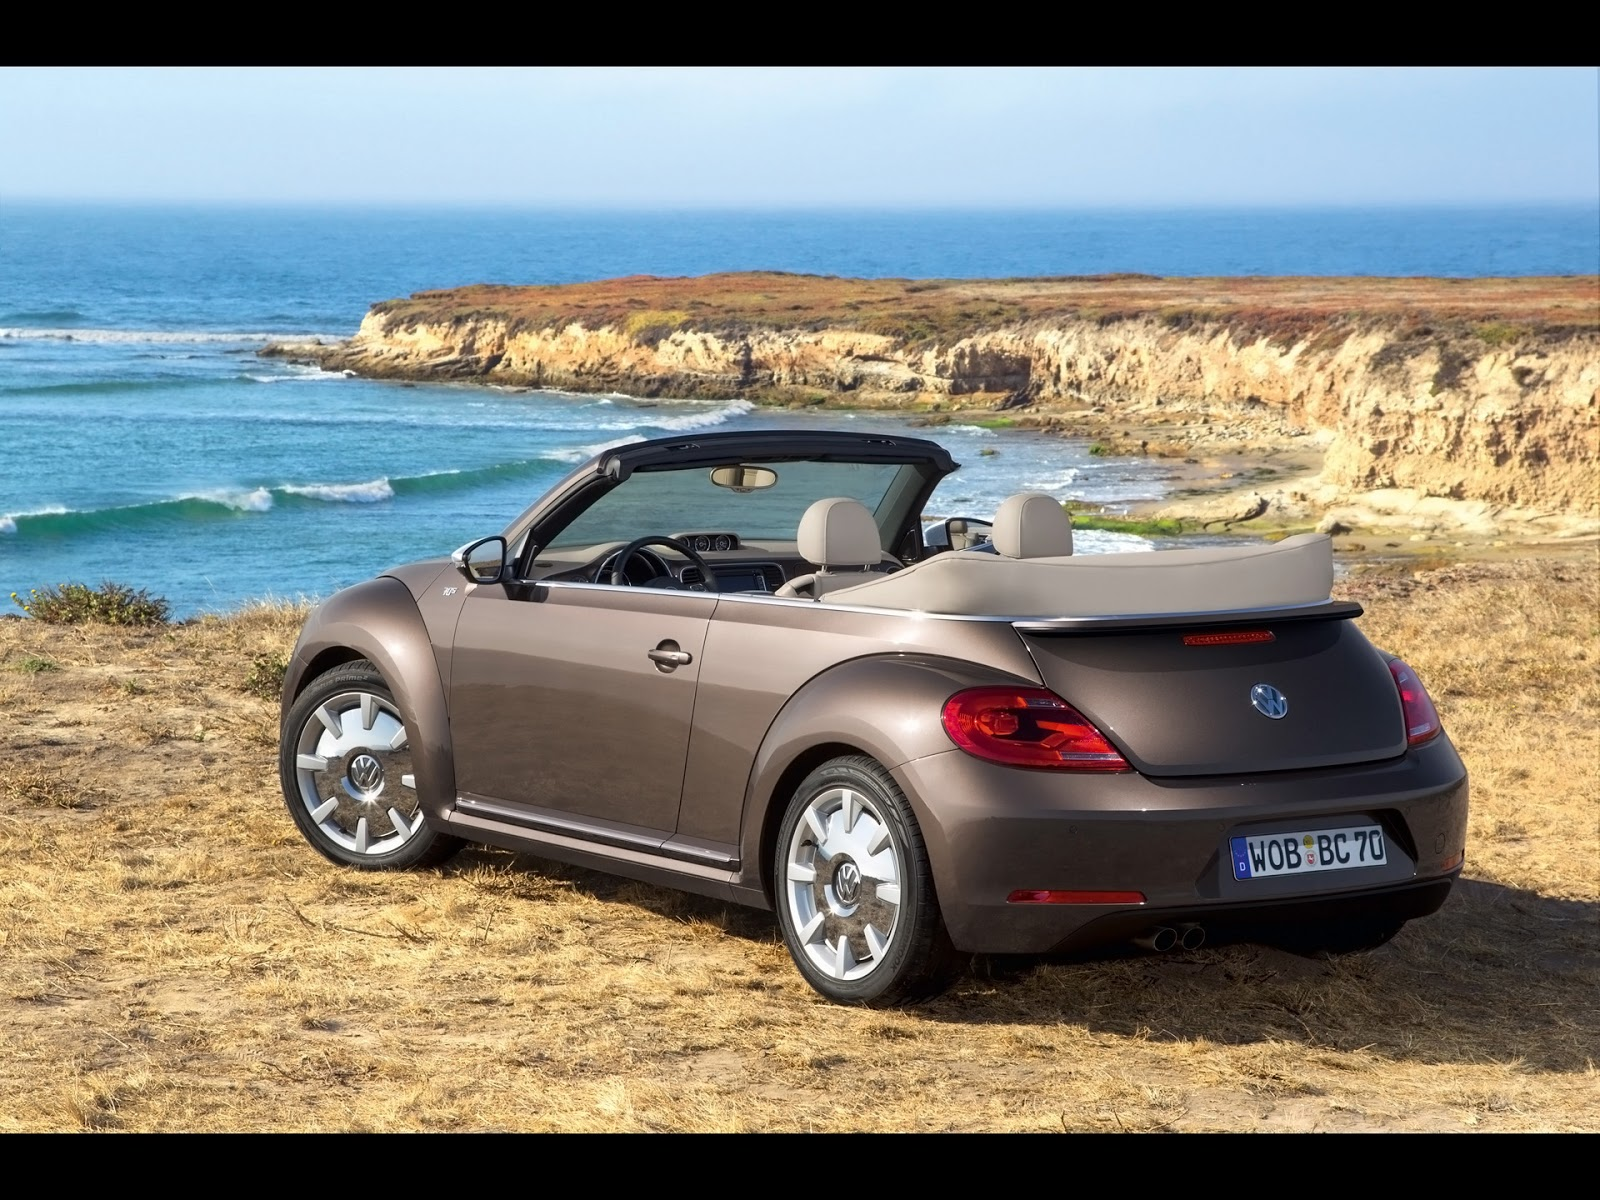 new car review 2013 volkswagen beetle convertible 70s edition. Black Bedroom Furniture Sets. Home Design Ideas